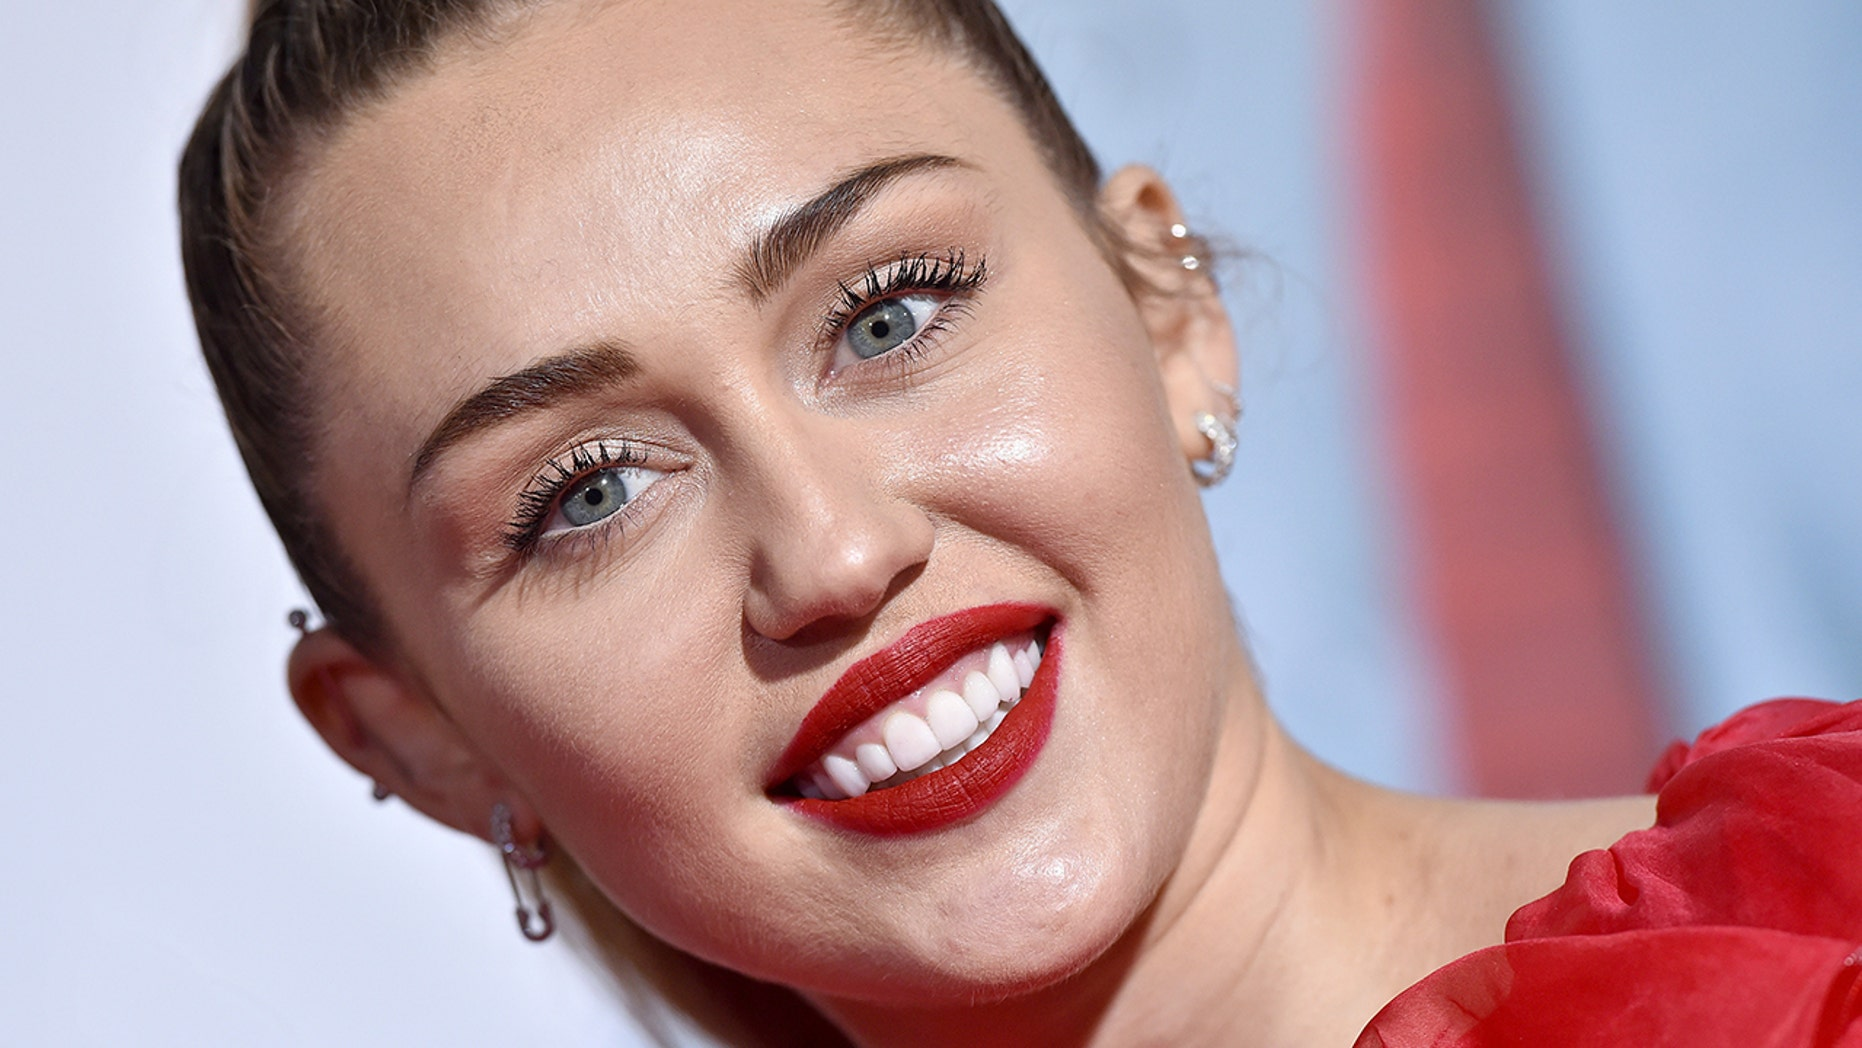 Miley Cyrus' Valentine's Day Message For Liam Hemsworth Is High-Key NSFW